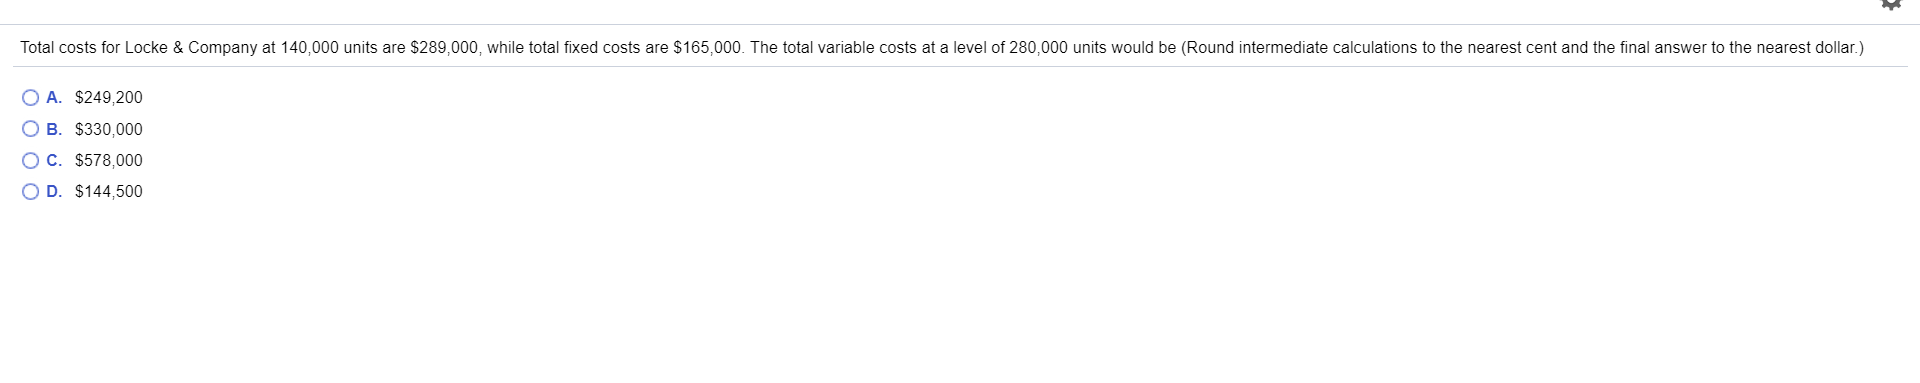 Total costs for Locke & Company at 140,000 units are $289,000, while total fixed costs are $165,000. The total variable costs at a level of 280,000 units would be (Round intermediate calculations to the nearest cent and the final answer to the nearest dollar.) O A. $249,200 B. $330,000 C. $578,000 O D. $144,500